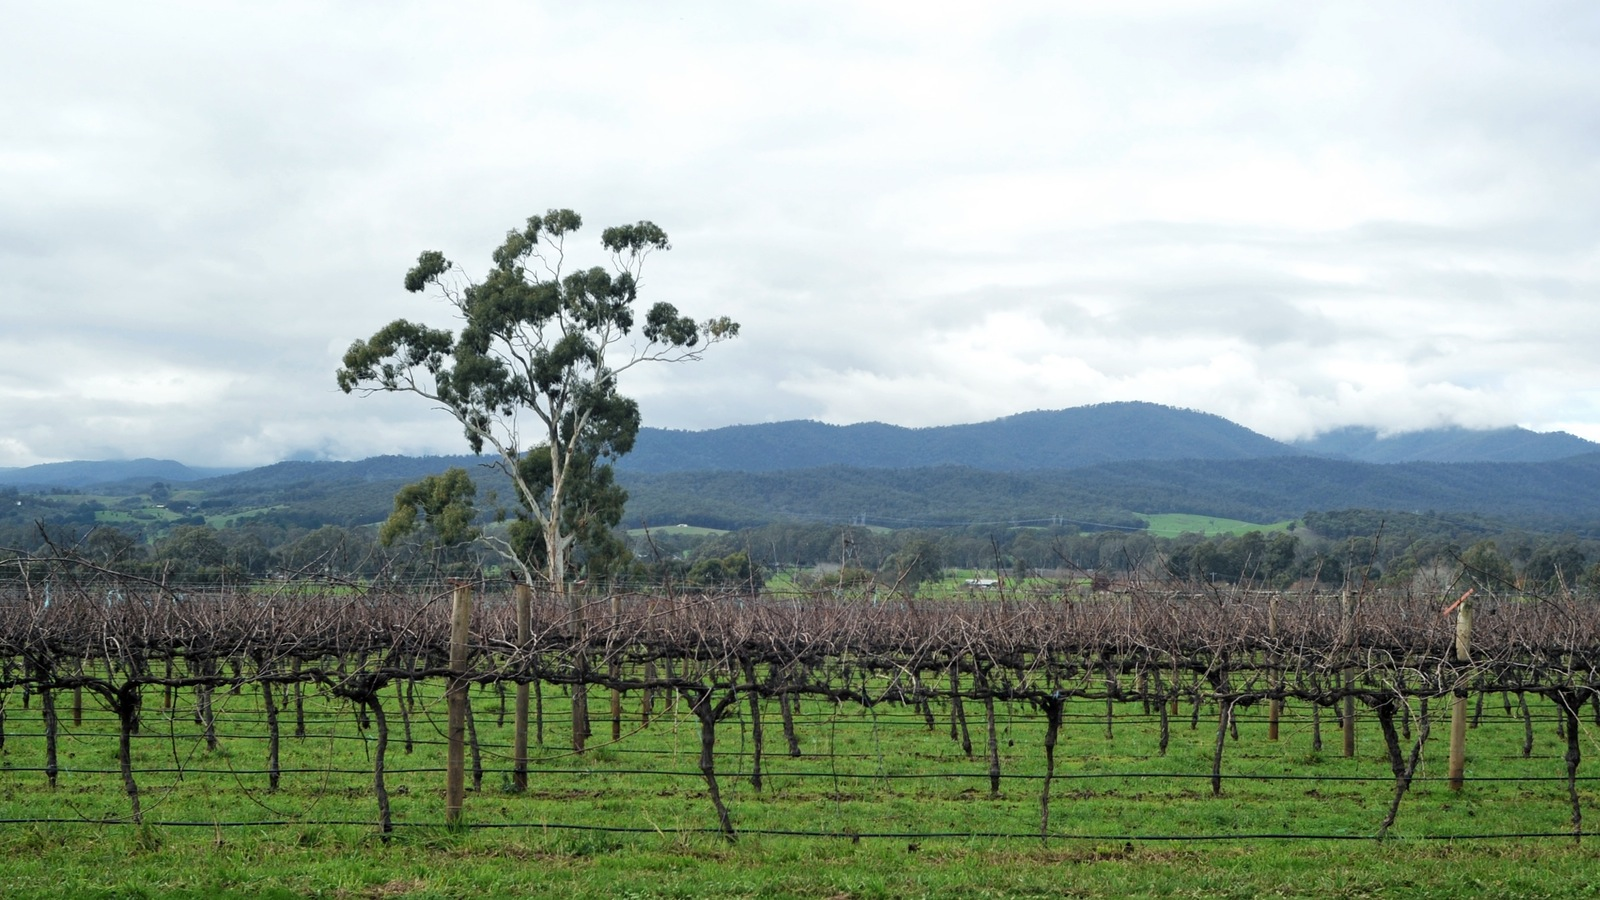 Winter on the vines